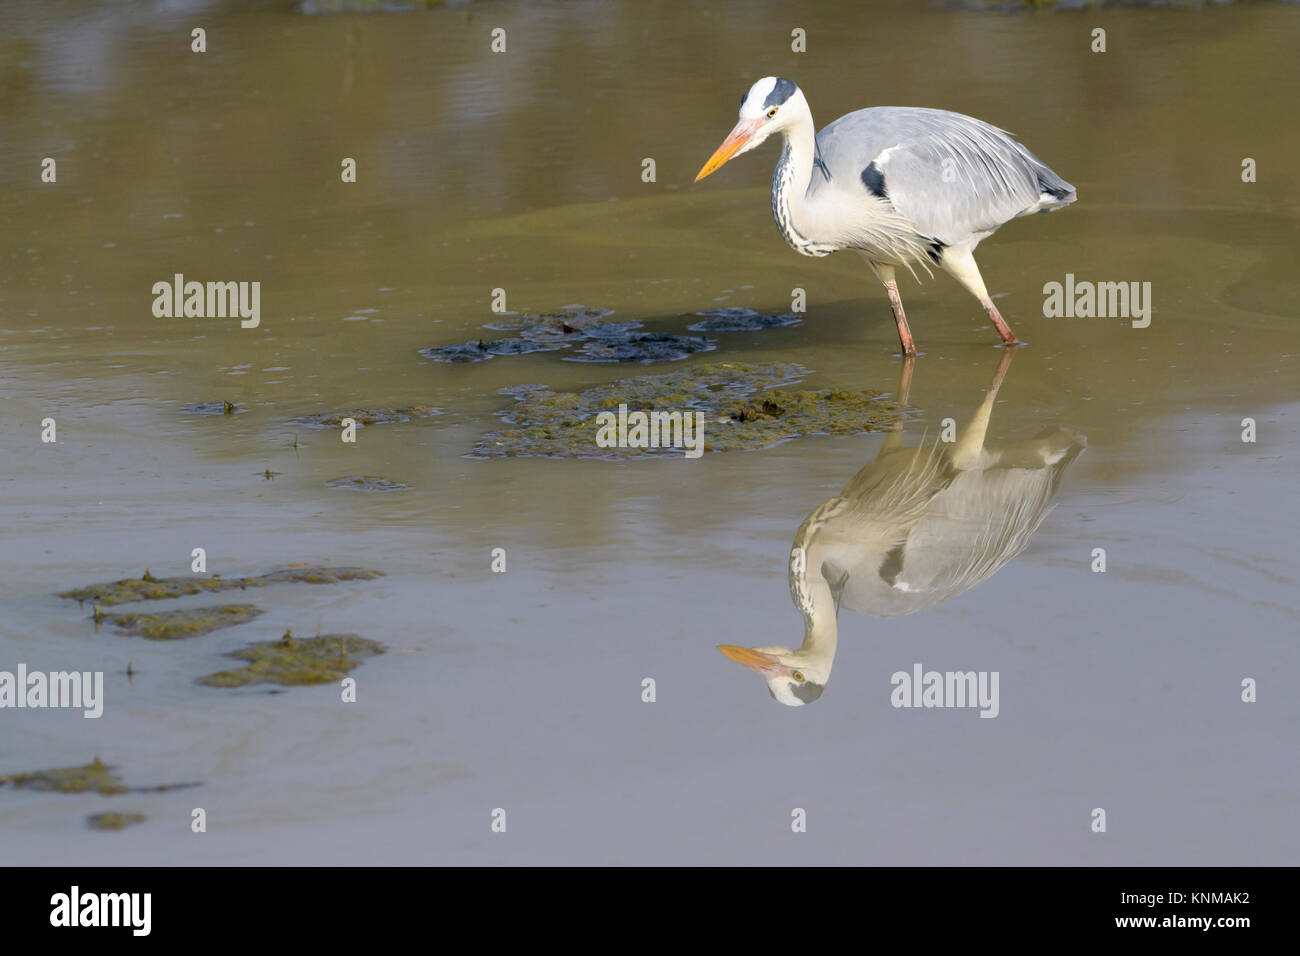 Grey heron (Ardea cinerea), foraging for food with reflection, Mountain Zebra National Park, South Africa - Stock Image